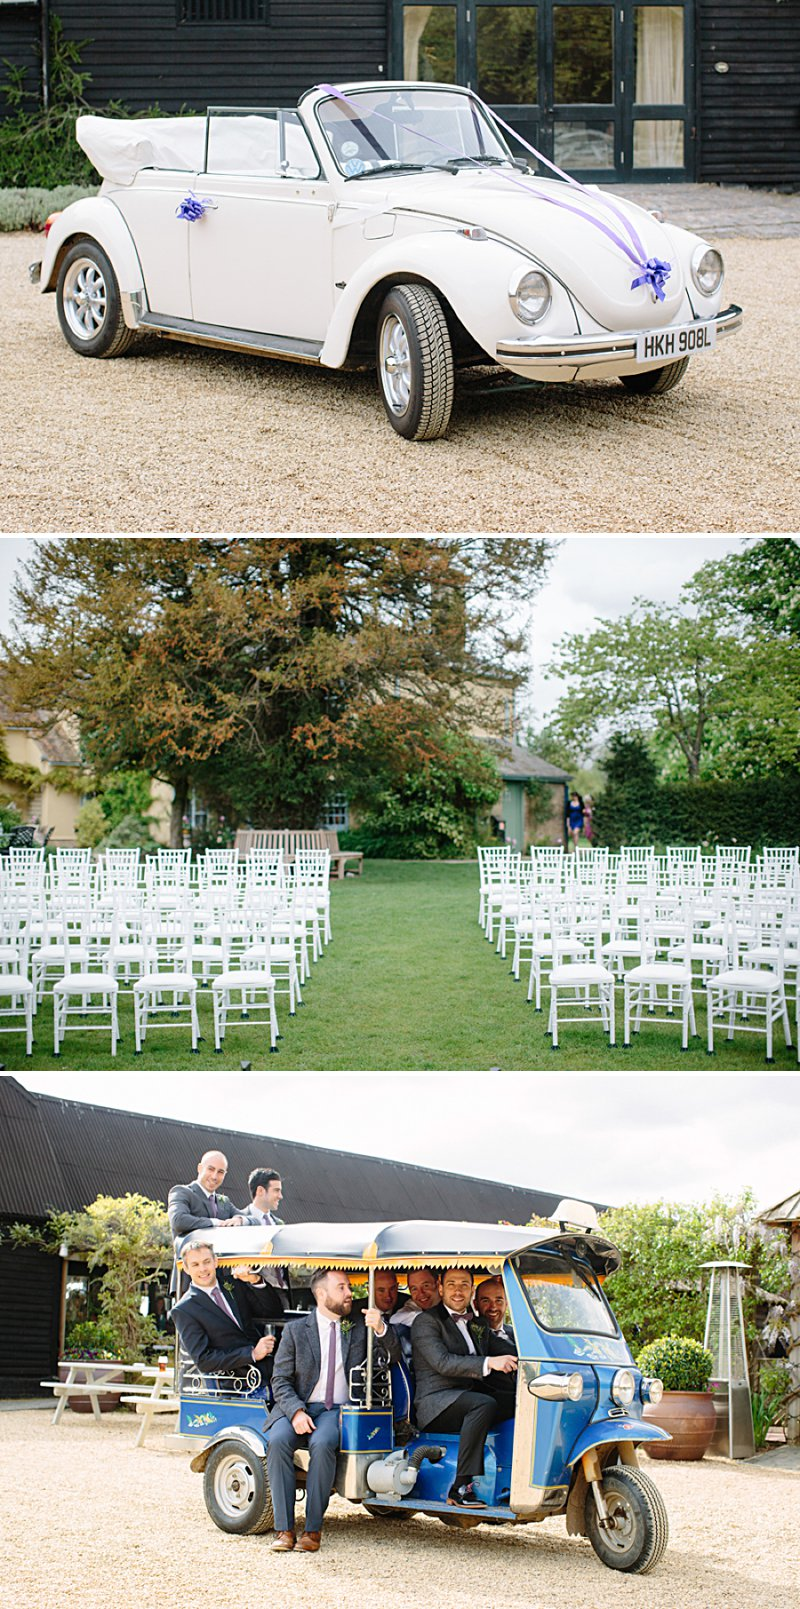 An Outdoor Wedding With Vintage VW beetle Tuk Tuk And Rustic Details. Paloma Blanca Dress Dessy Bridesmaids and Monsoon Flowers Girls. Photography by Nicola Milns 0001 May The Road Rise To Meet You.